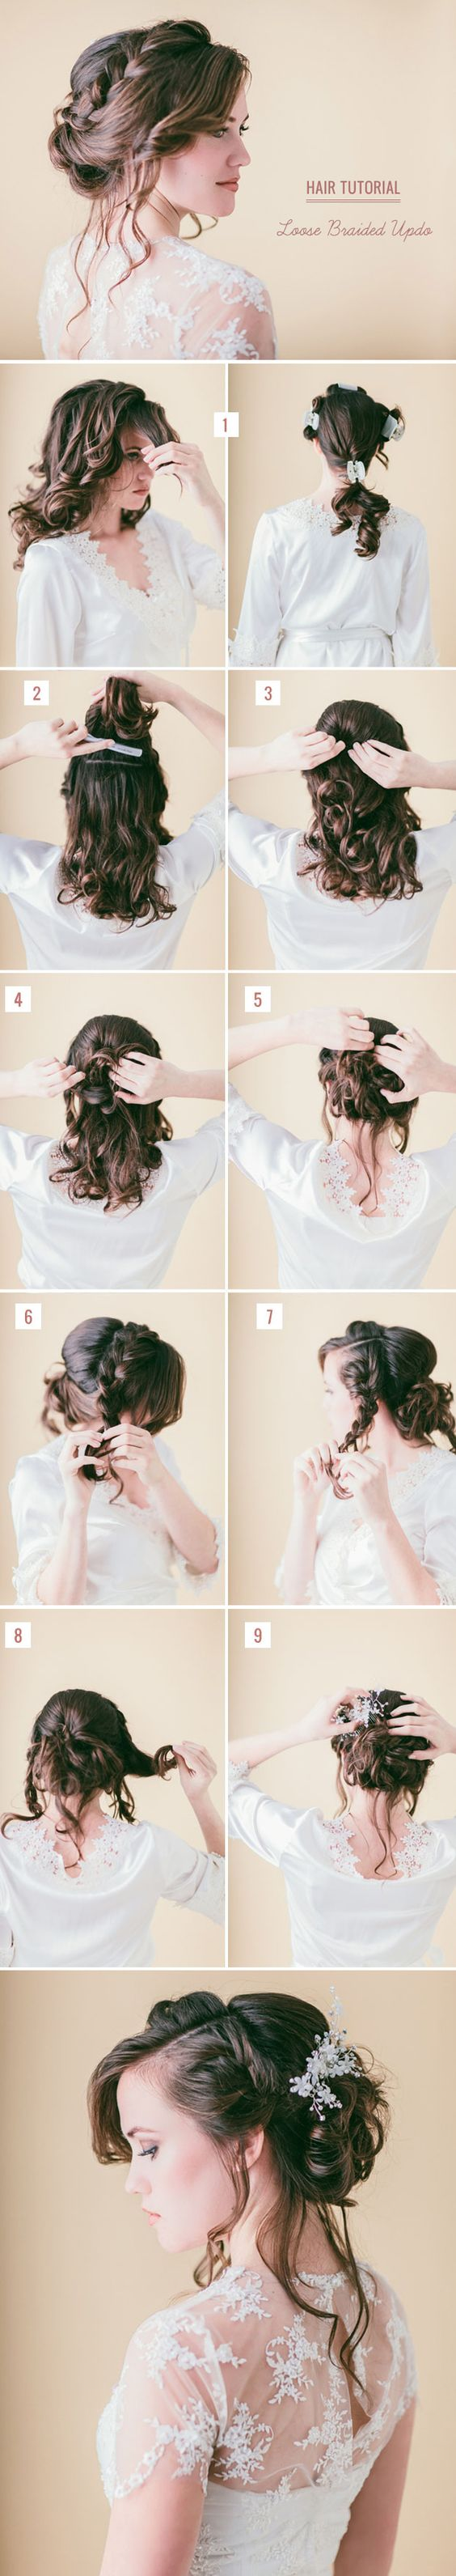 10 Best DIY Wedding Hairstyles with Tutorials | http://www.tulleandchantilly.com/blog/10-best-diy-wedding-hairstyles-with-tutorials/: